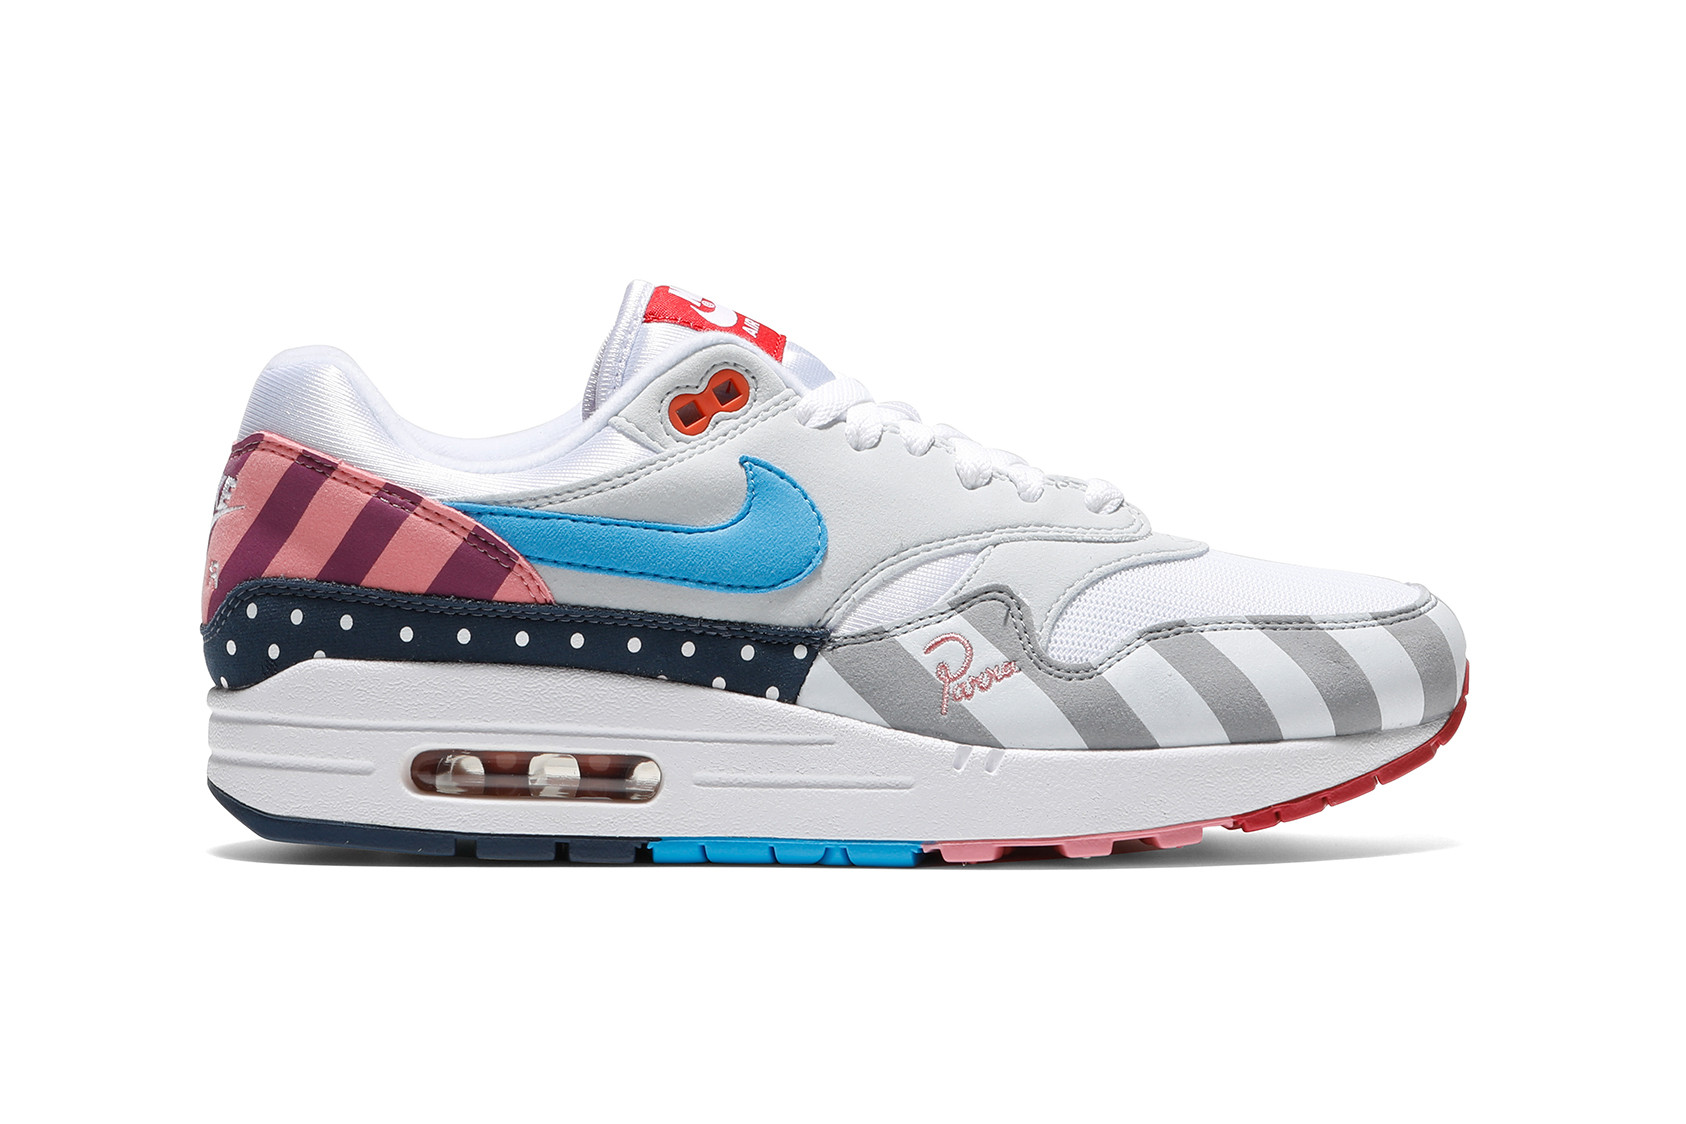 air max 1 parra 2018 for sale - itccassino.it